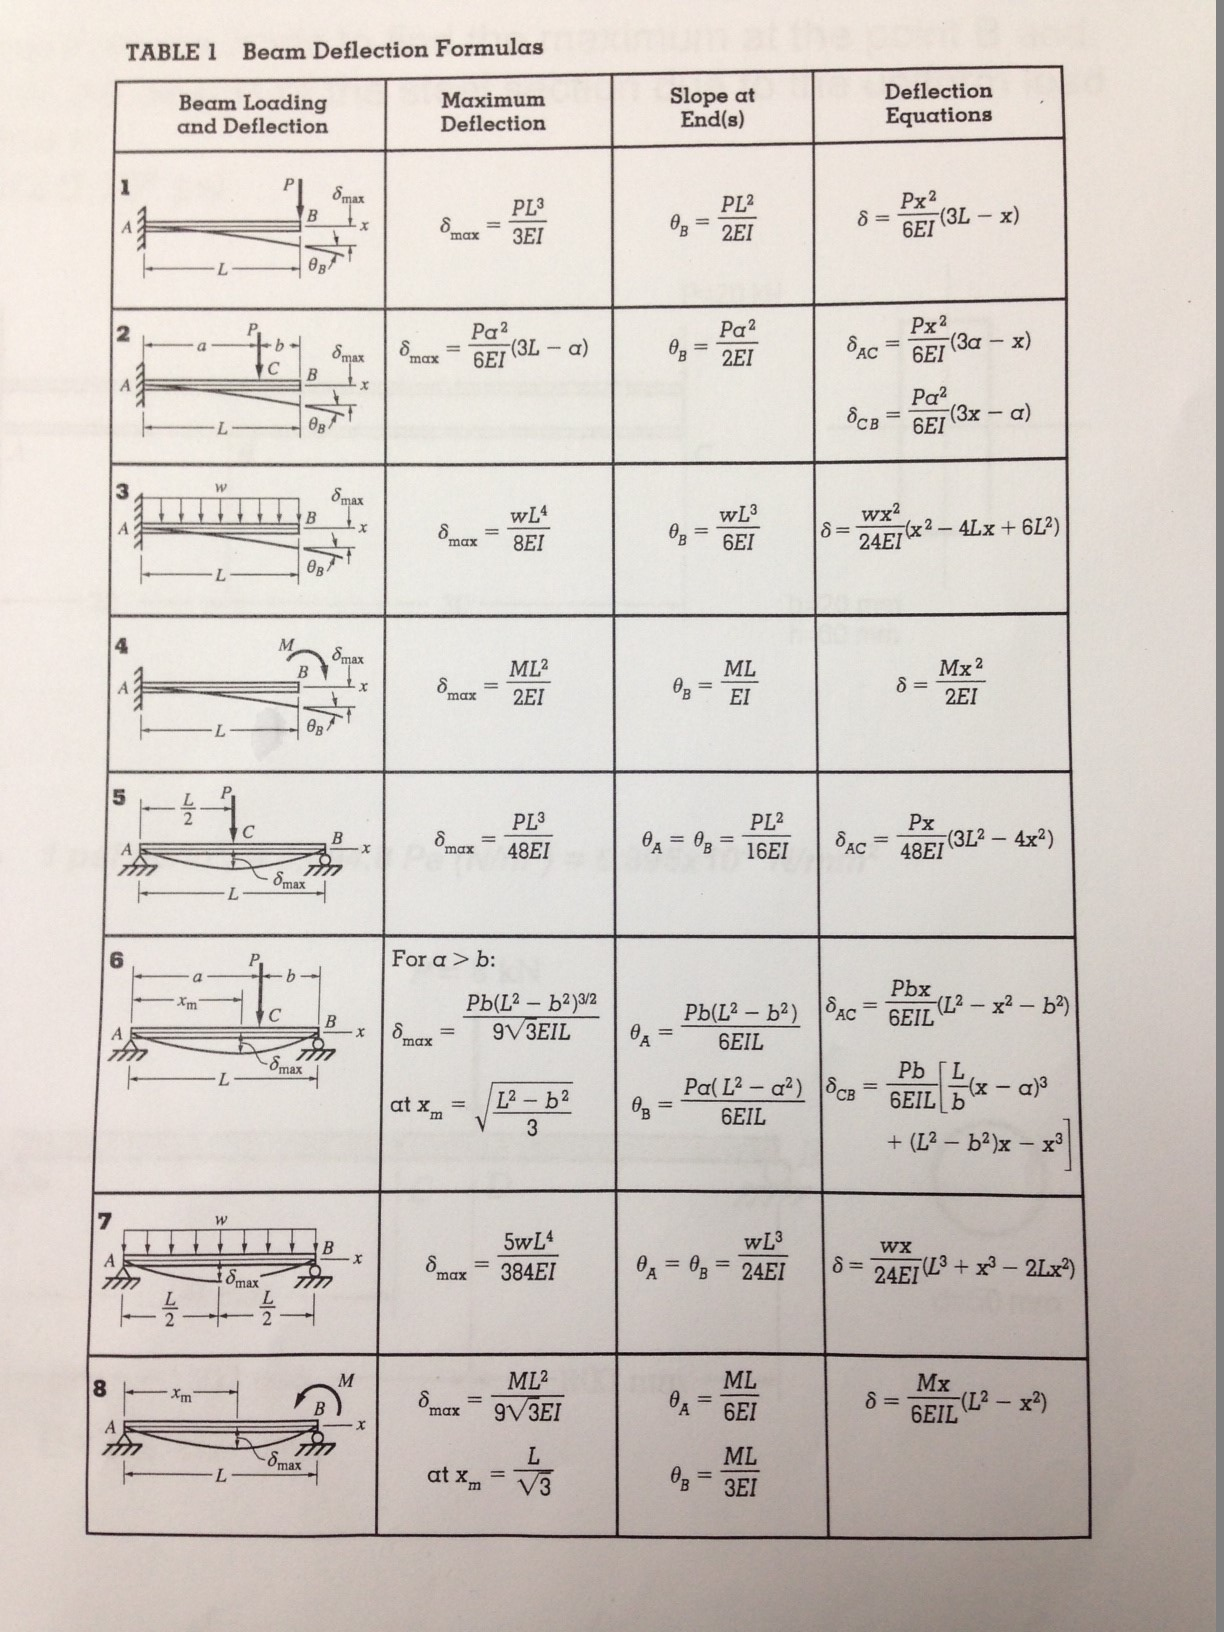 Solved: TABLE1 Beam Deflection Formulas Beam Loading And D